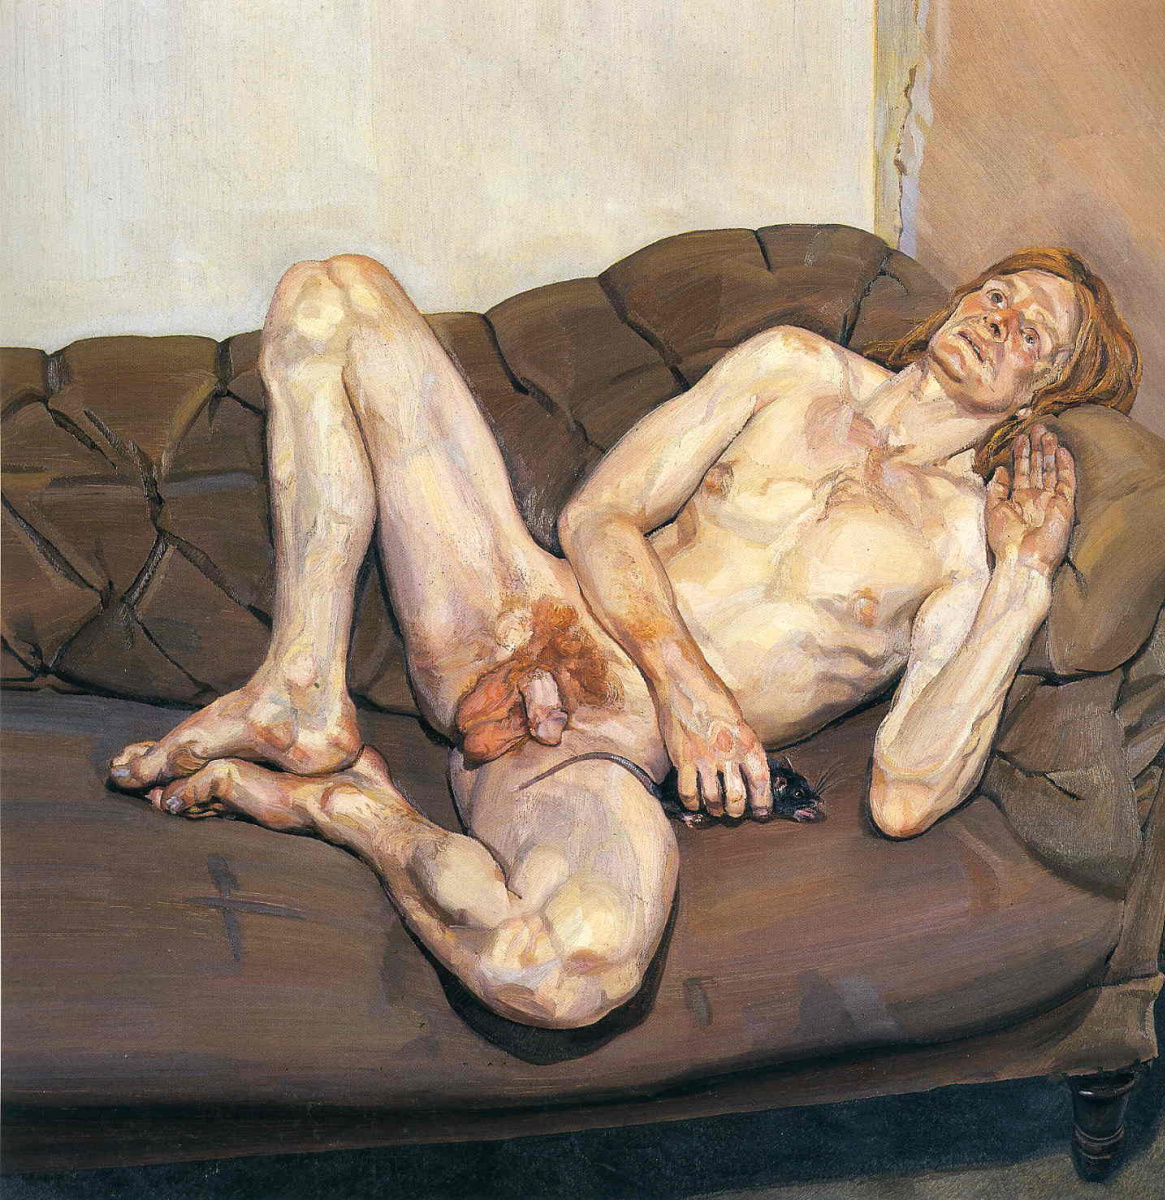 Lucien Freud. Nude man with rat